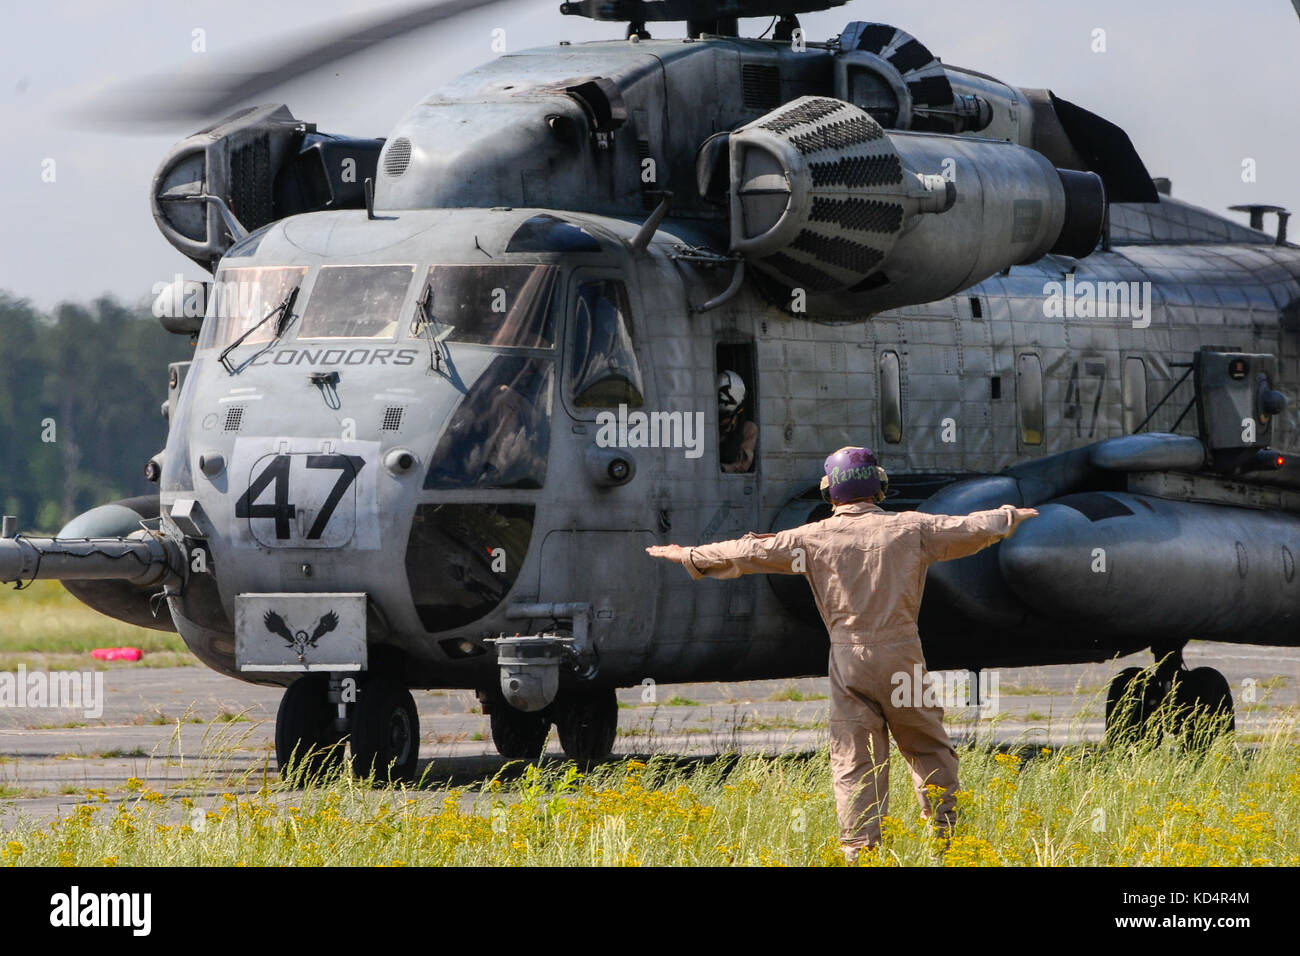 A U.S. Marine assigned to the 273rd Marine Wing Support Squadron, Air Operations Company, marshals a CH-53 Sea Stallion - Stock Image